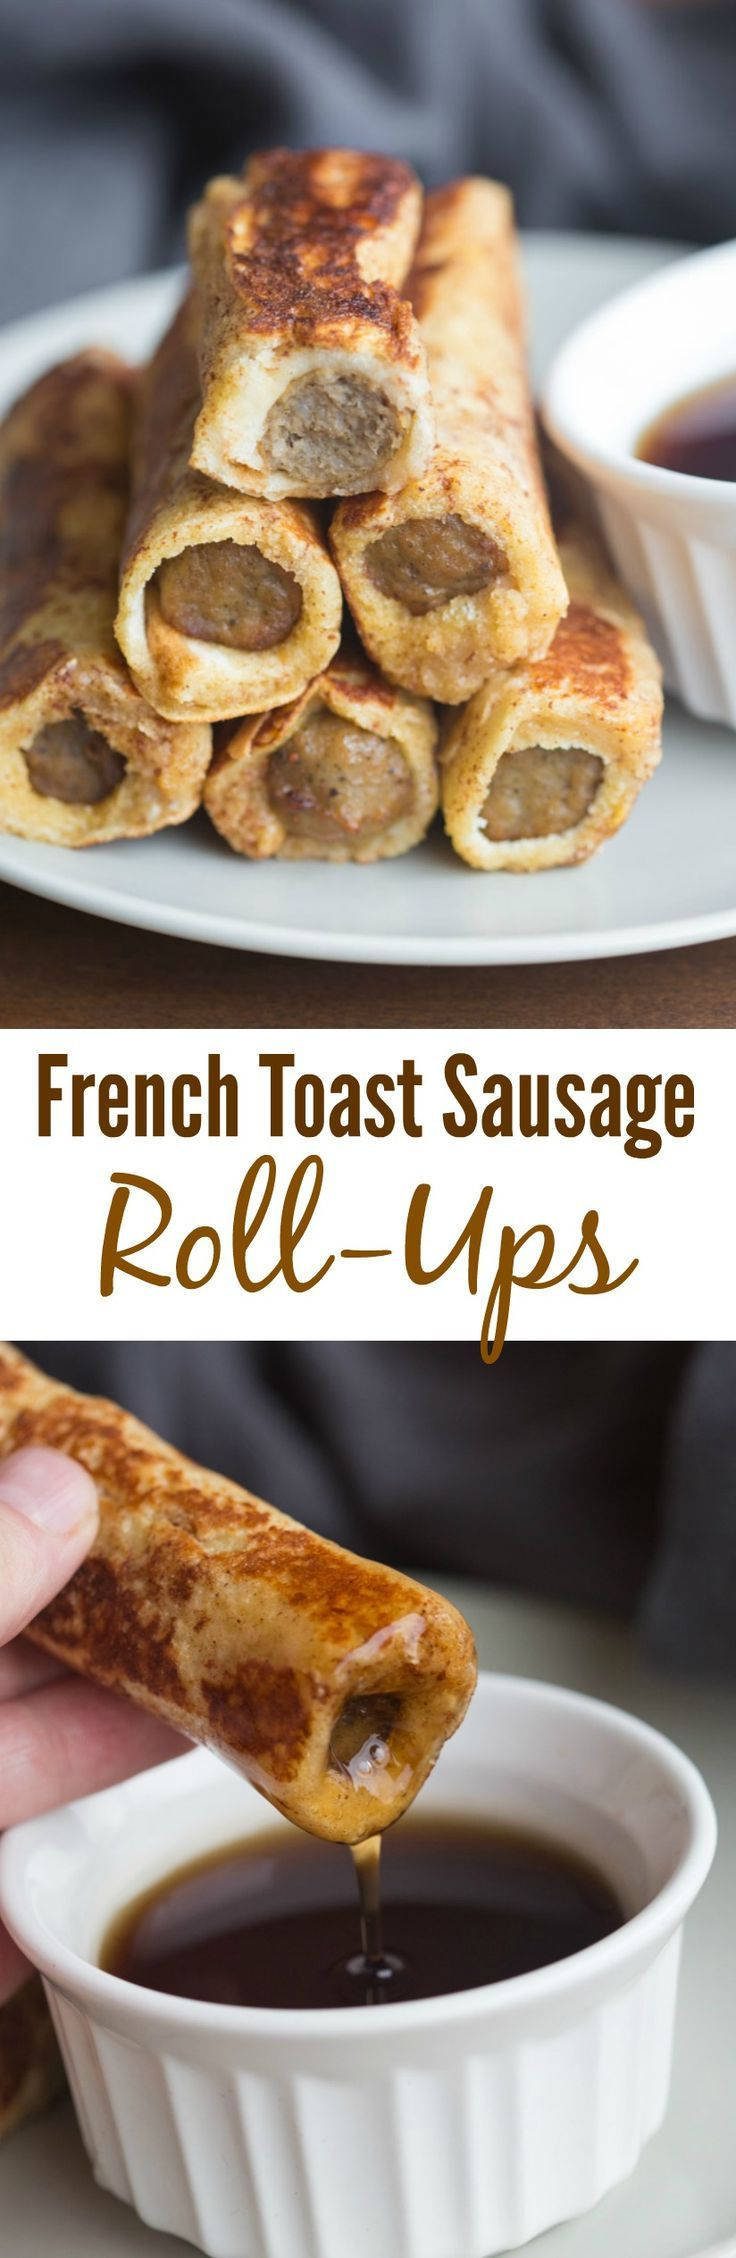 Easy to make and fun to eat, these French Toast Sausage Roll-Ups are always popular with my family. A yummy twist on traditional french toast. I'm craving all t